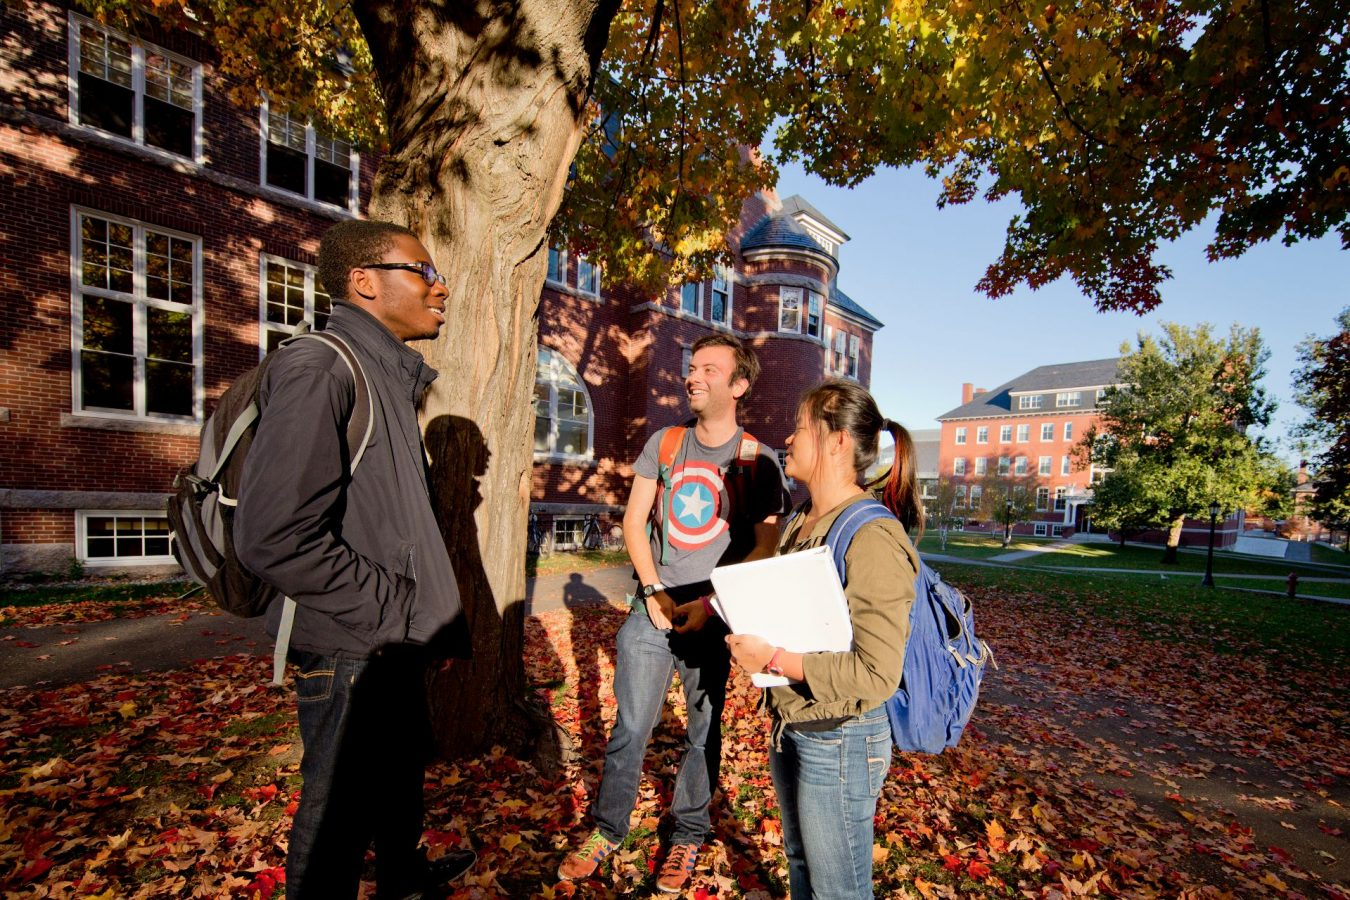 The Bates campus lights up with the brilliance of fall foliage on a late afternoon on the Historic Quad.  Annie Kandel '18 of Amherst, Mass., Matthew Winter '18 of New York City, and Durotimi Akinkugbe '18 of London, U.K. They were joined by a fourth student,